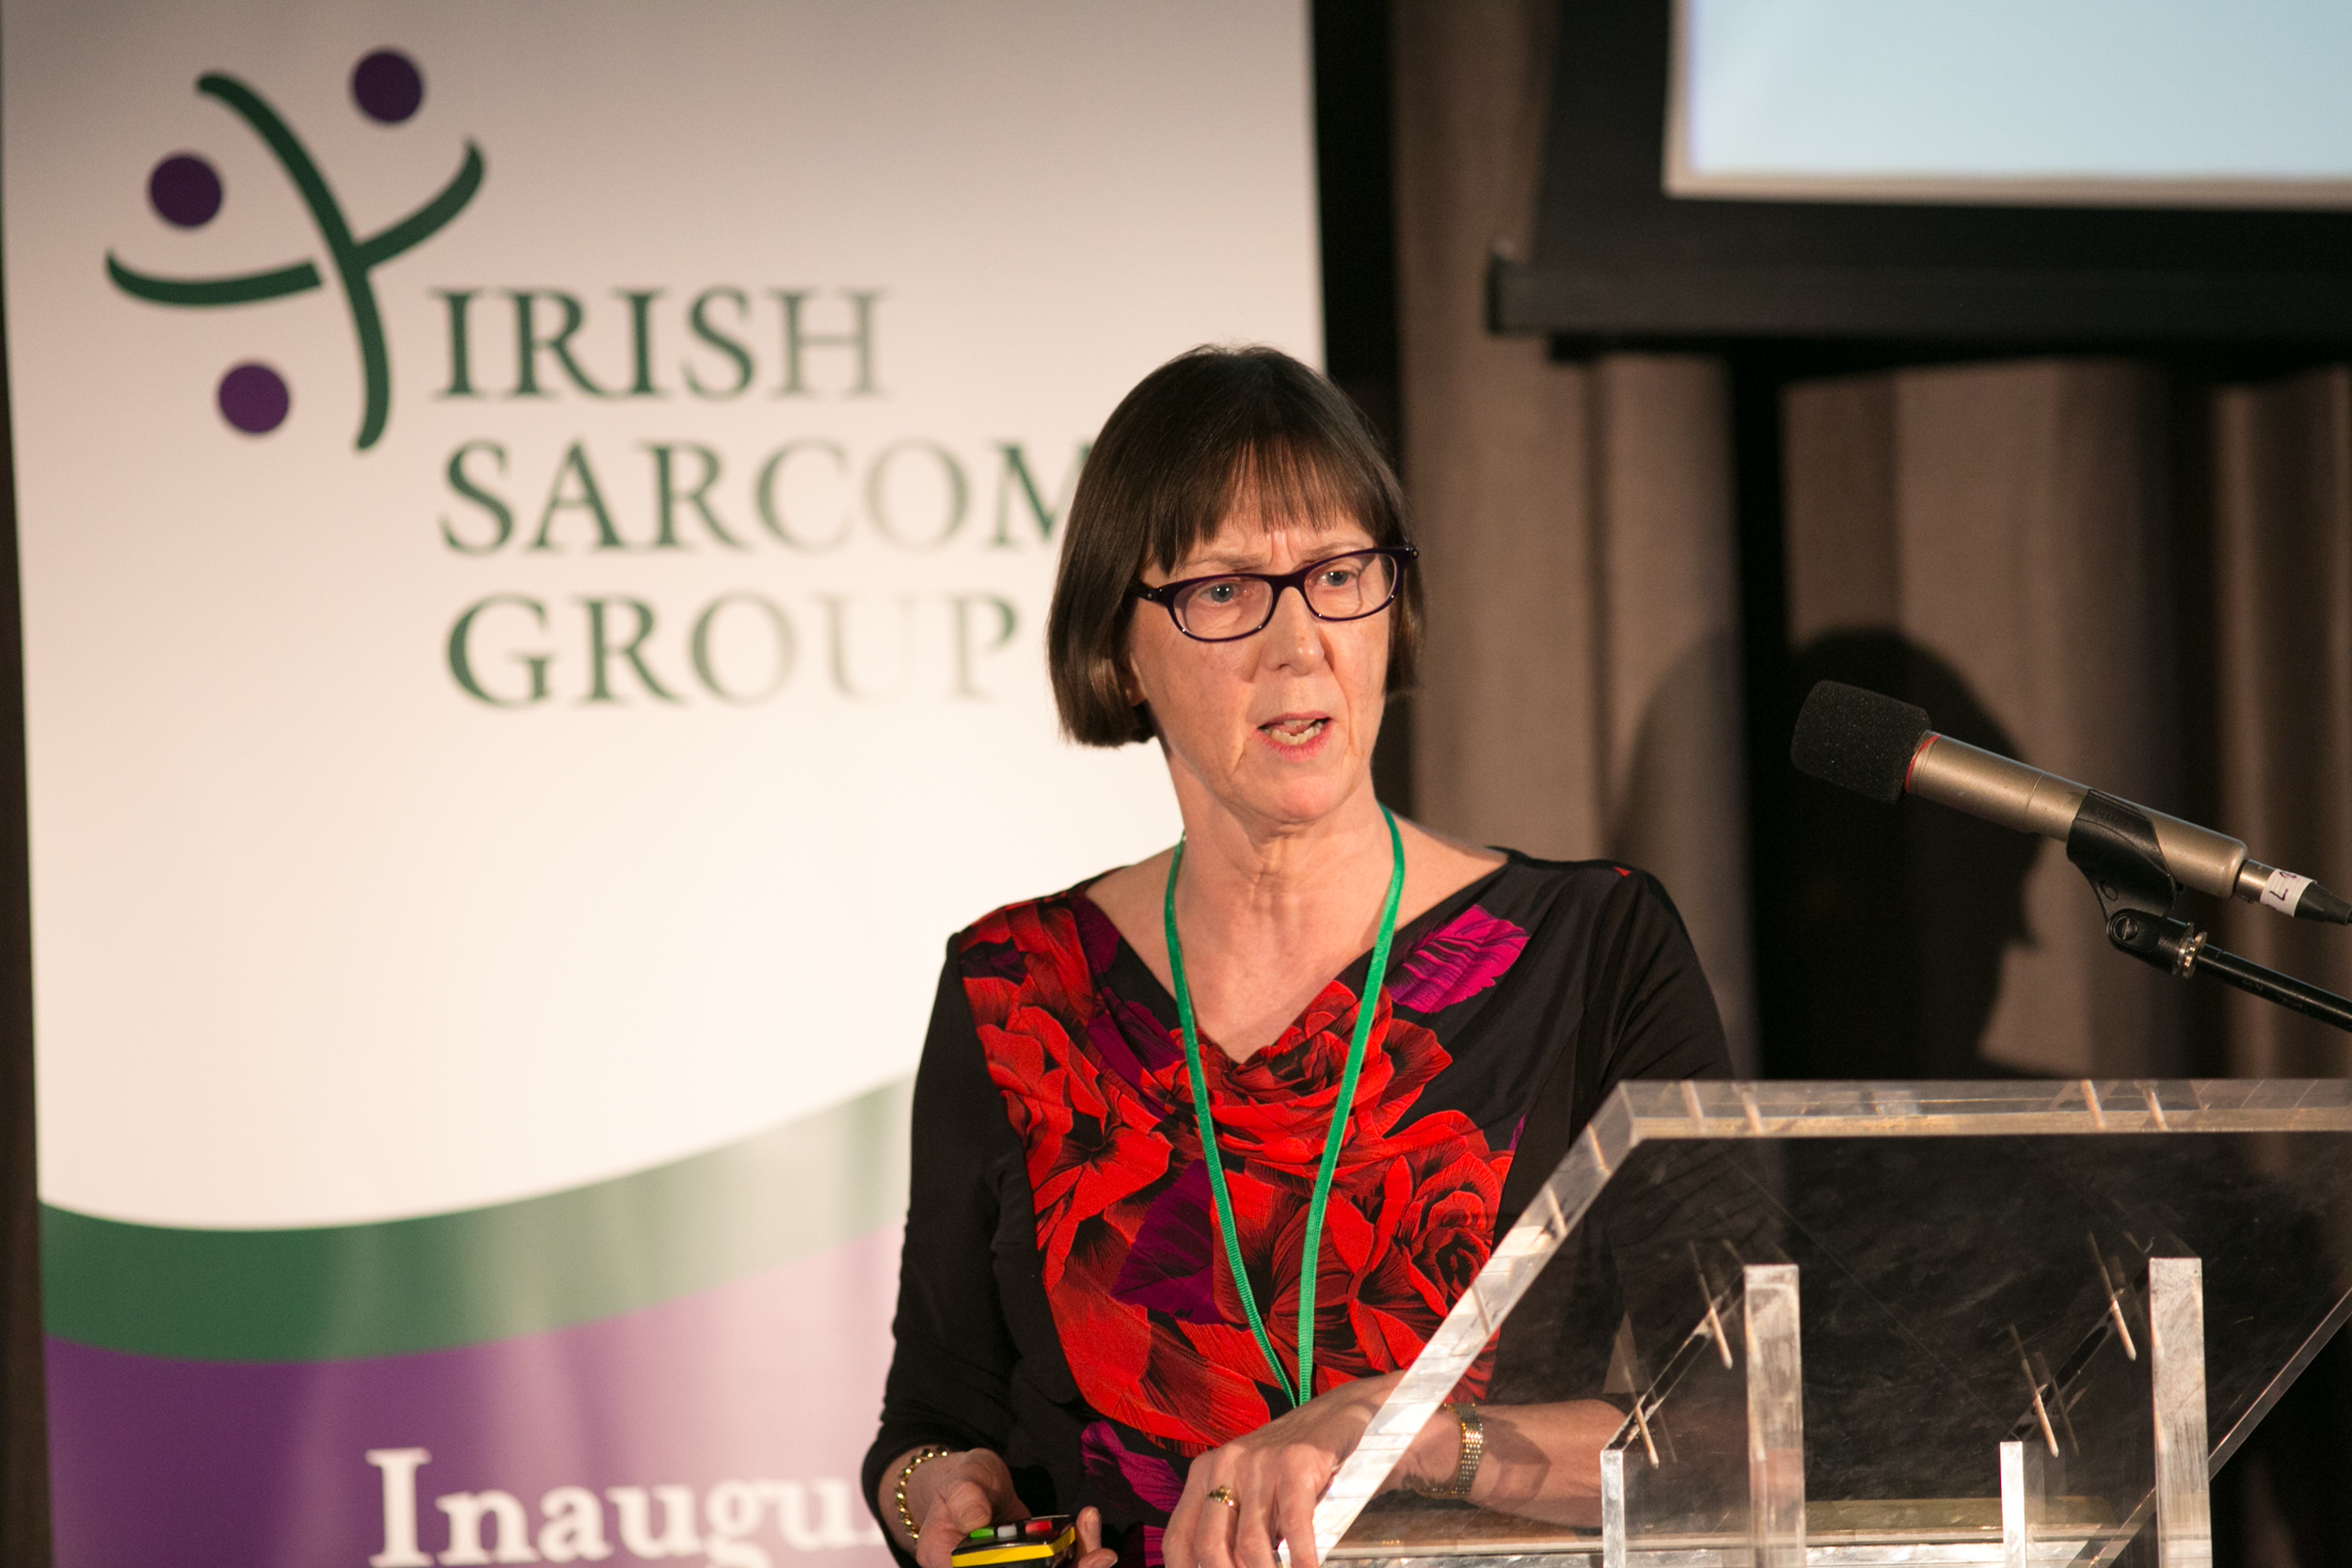 Prof Adrienne Flanagan, Consultant Histopathologist, Head of Academic Pathology, UCL Cancer Institute, London